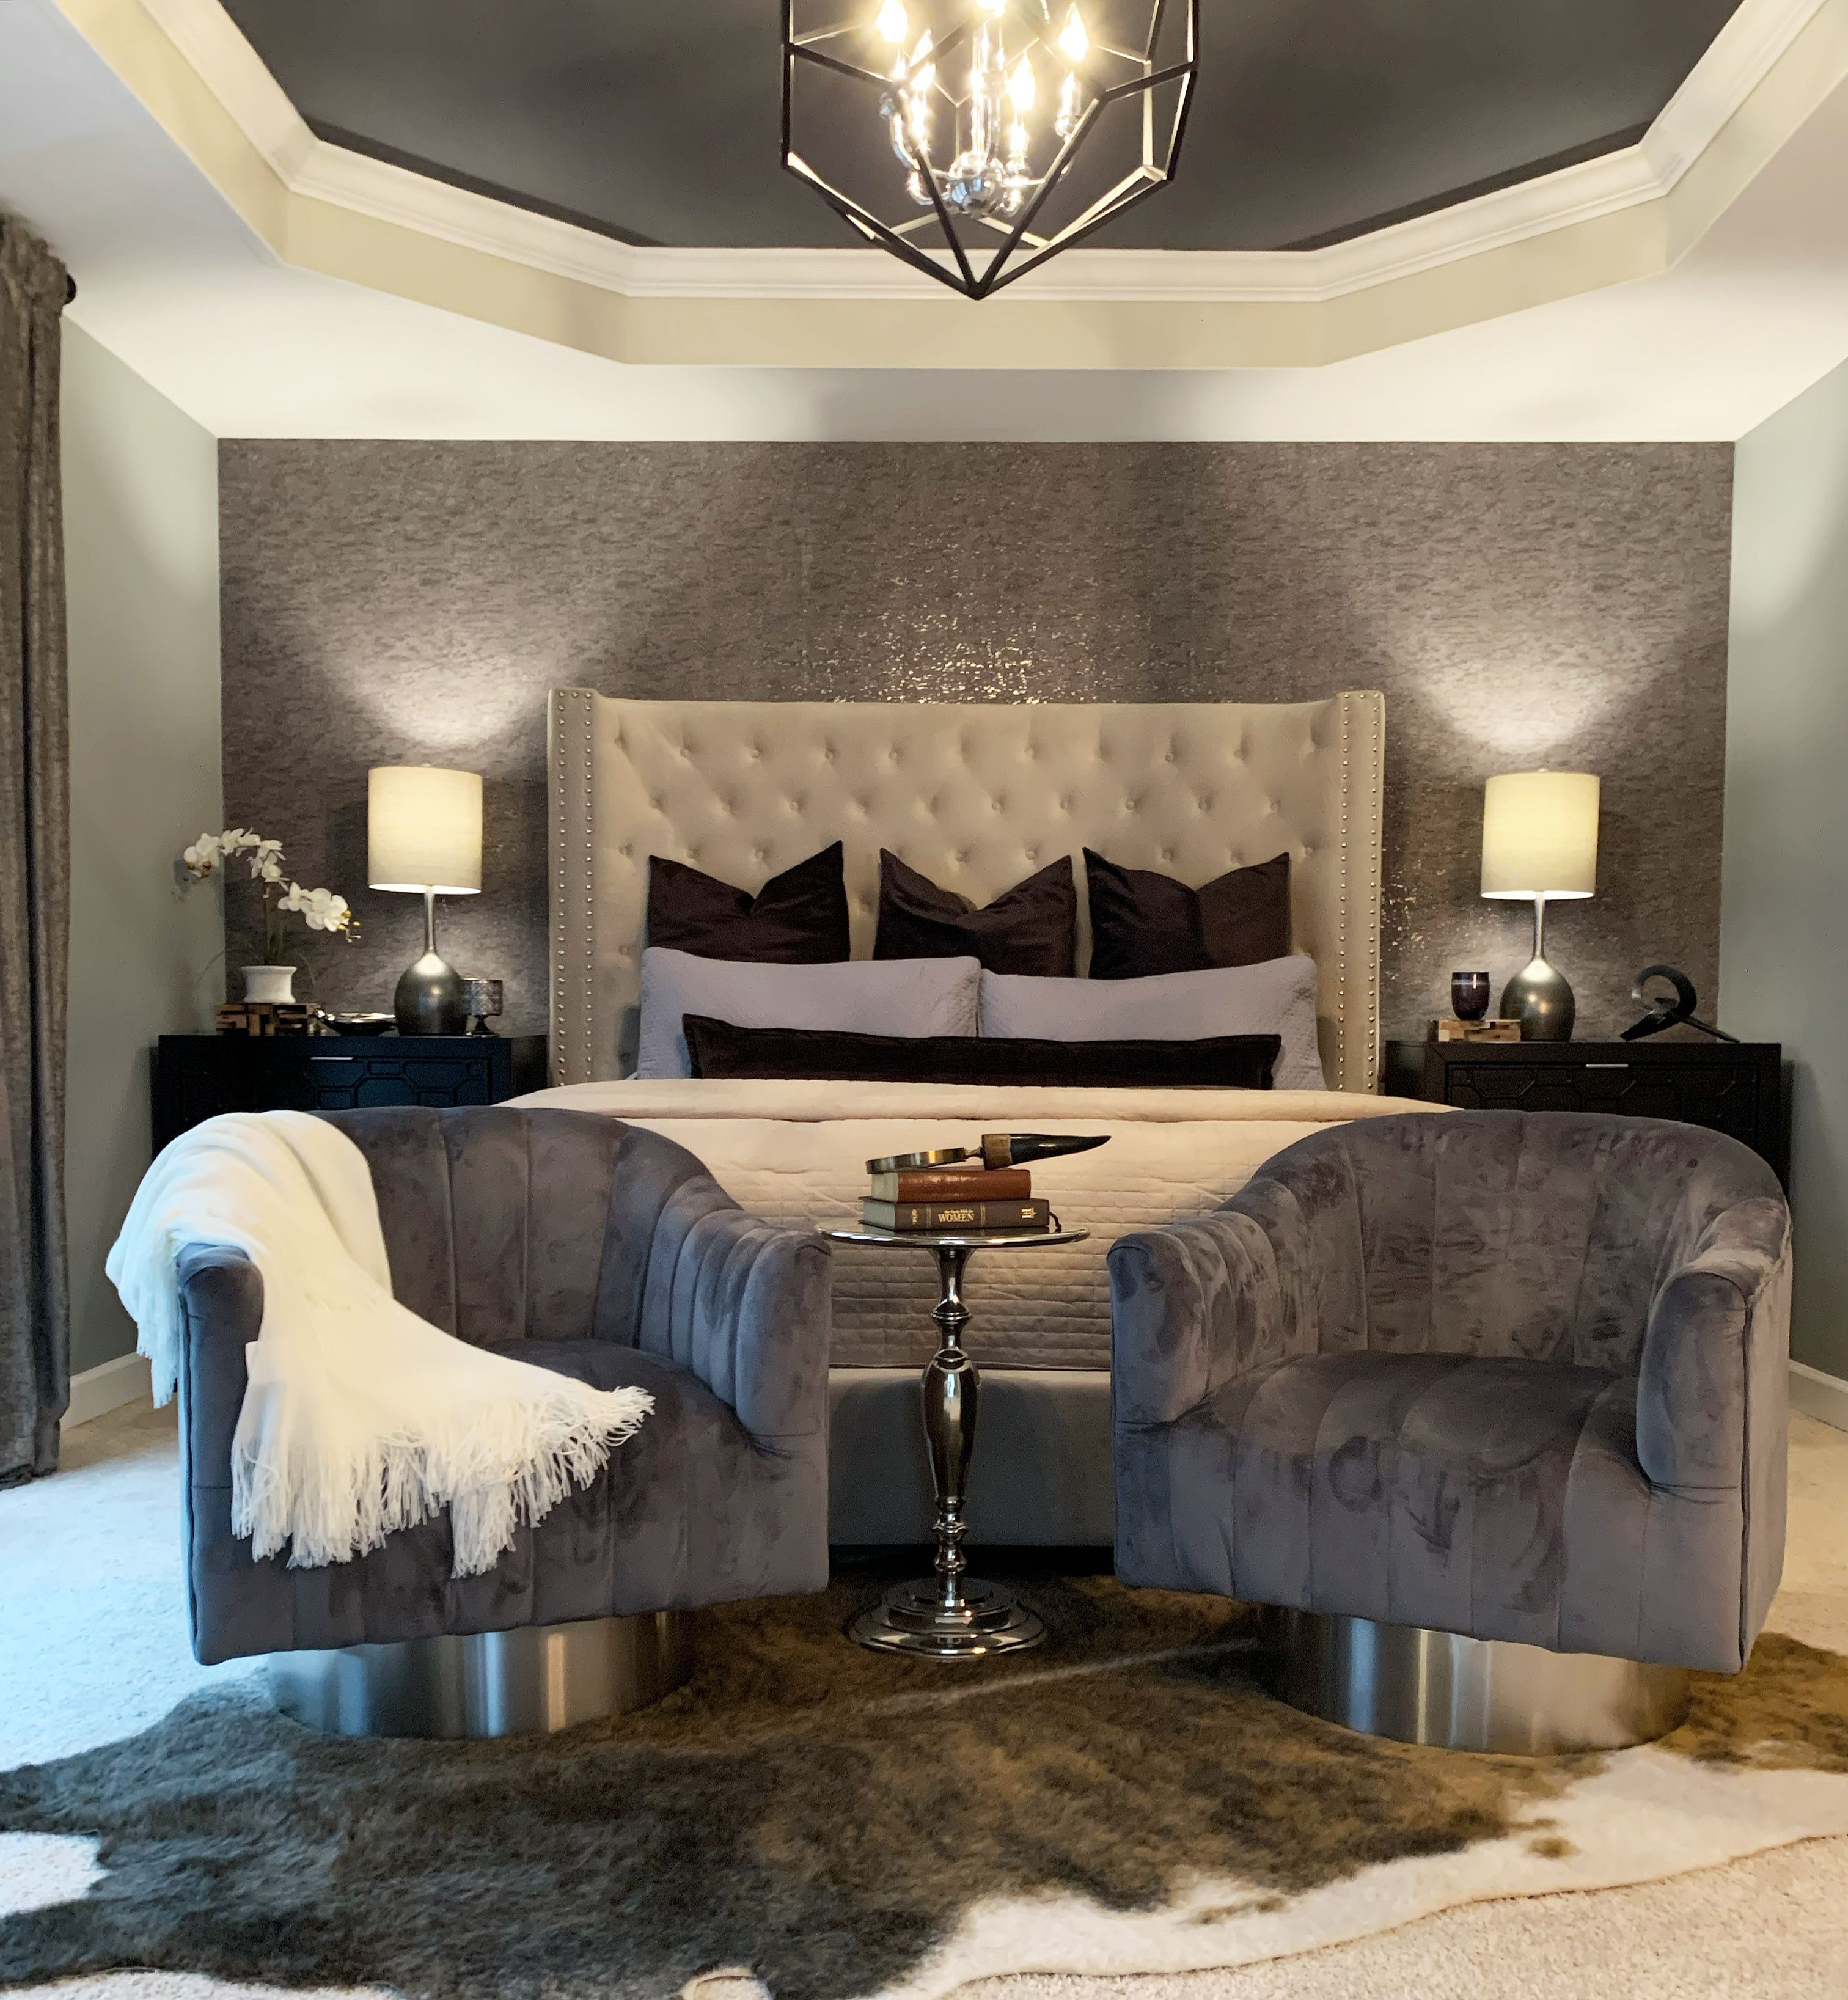 Neutral bedroom decor with faux cork wallpaper accent wall